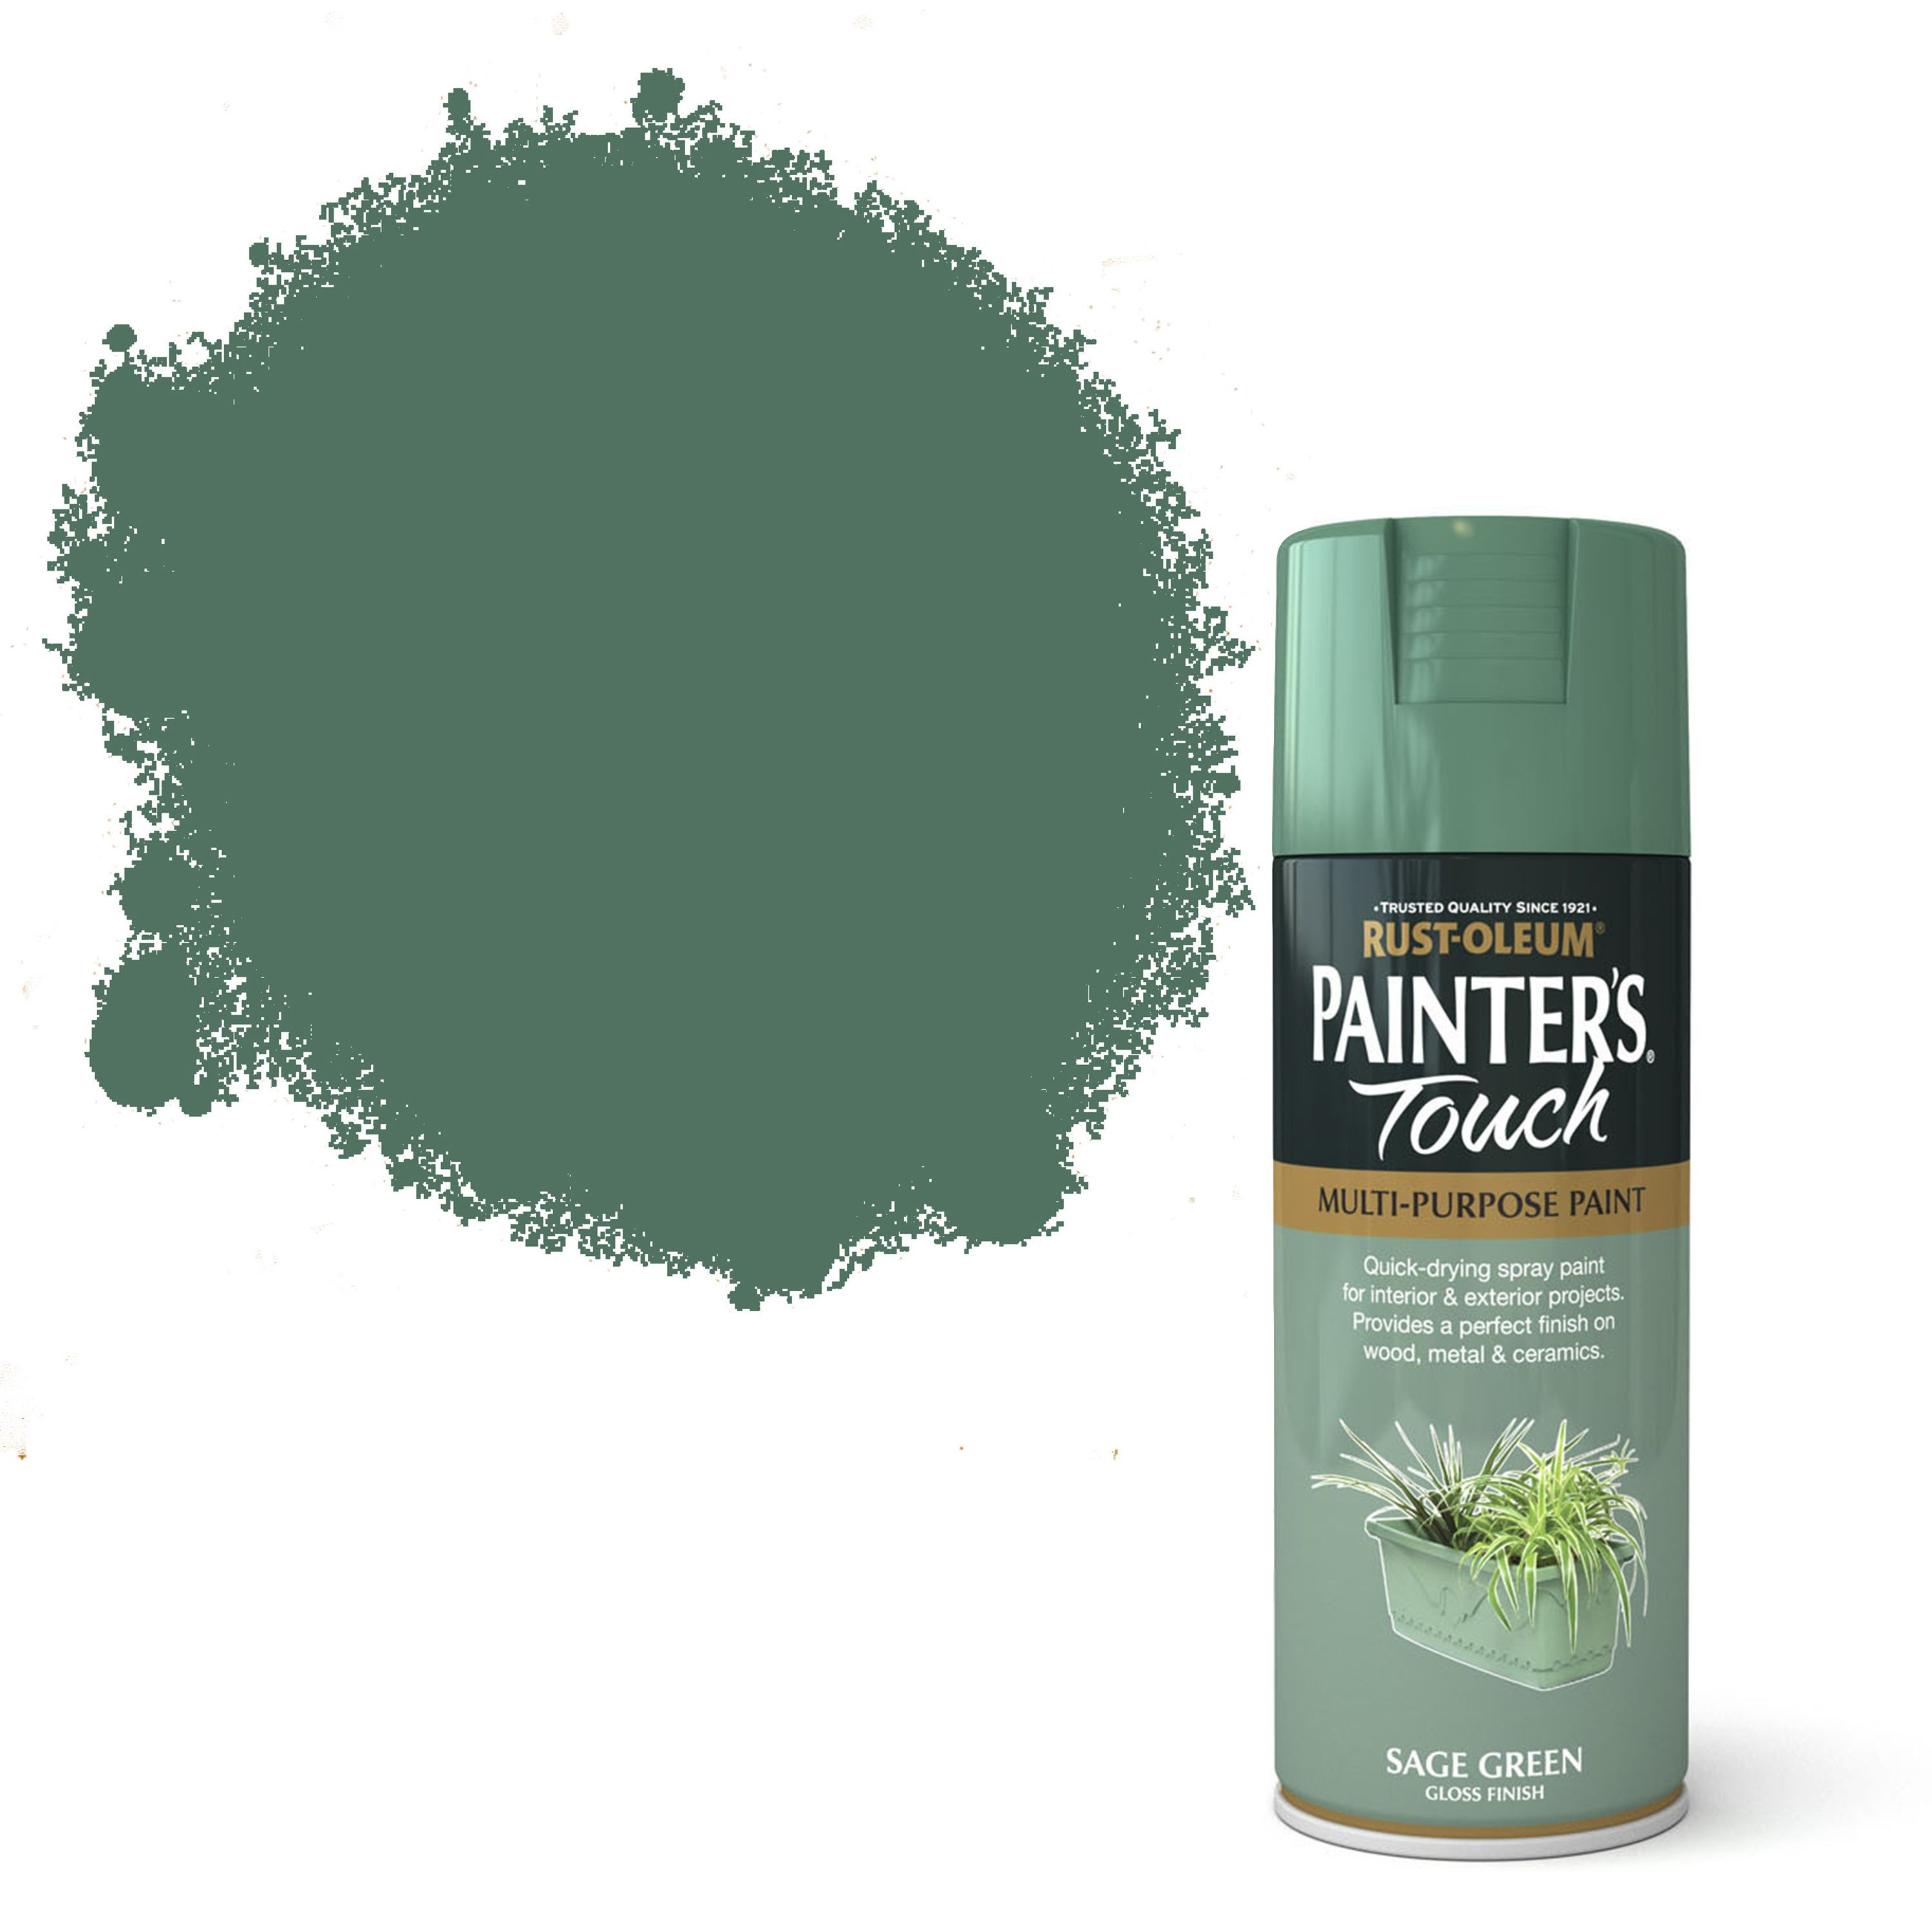 Rust-oleum Painter's Touch Sage Green Gloss Gloss Decorative Spray Paint 400 Ml